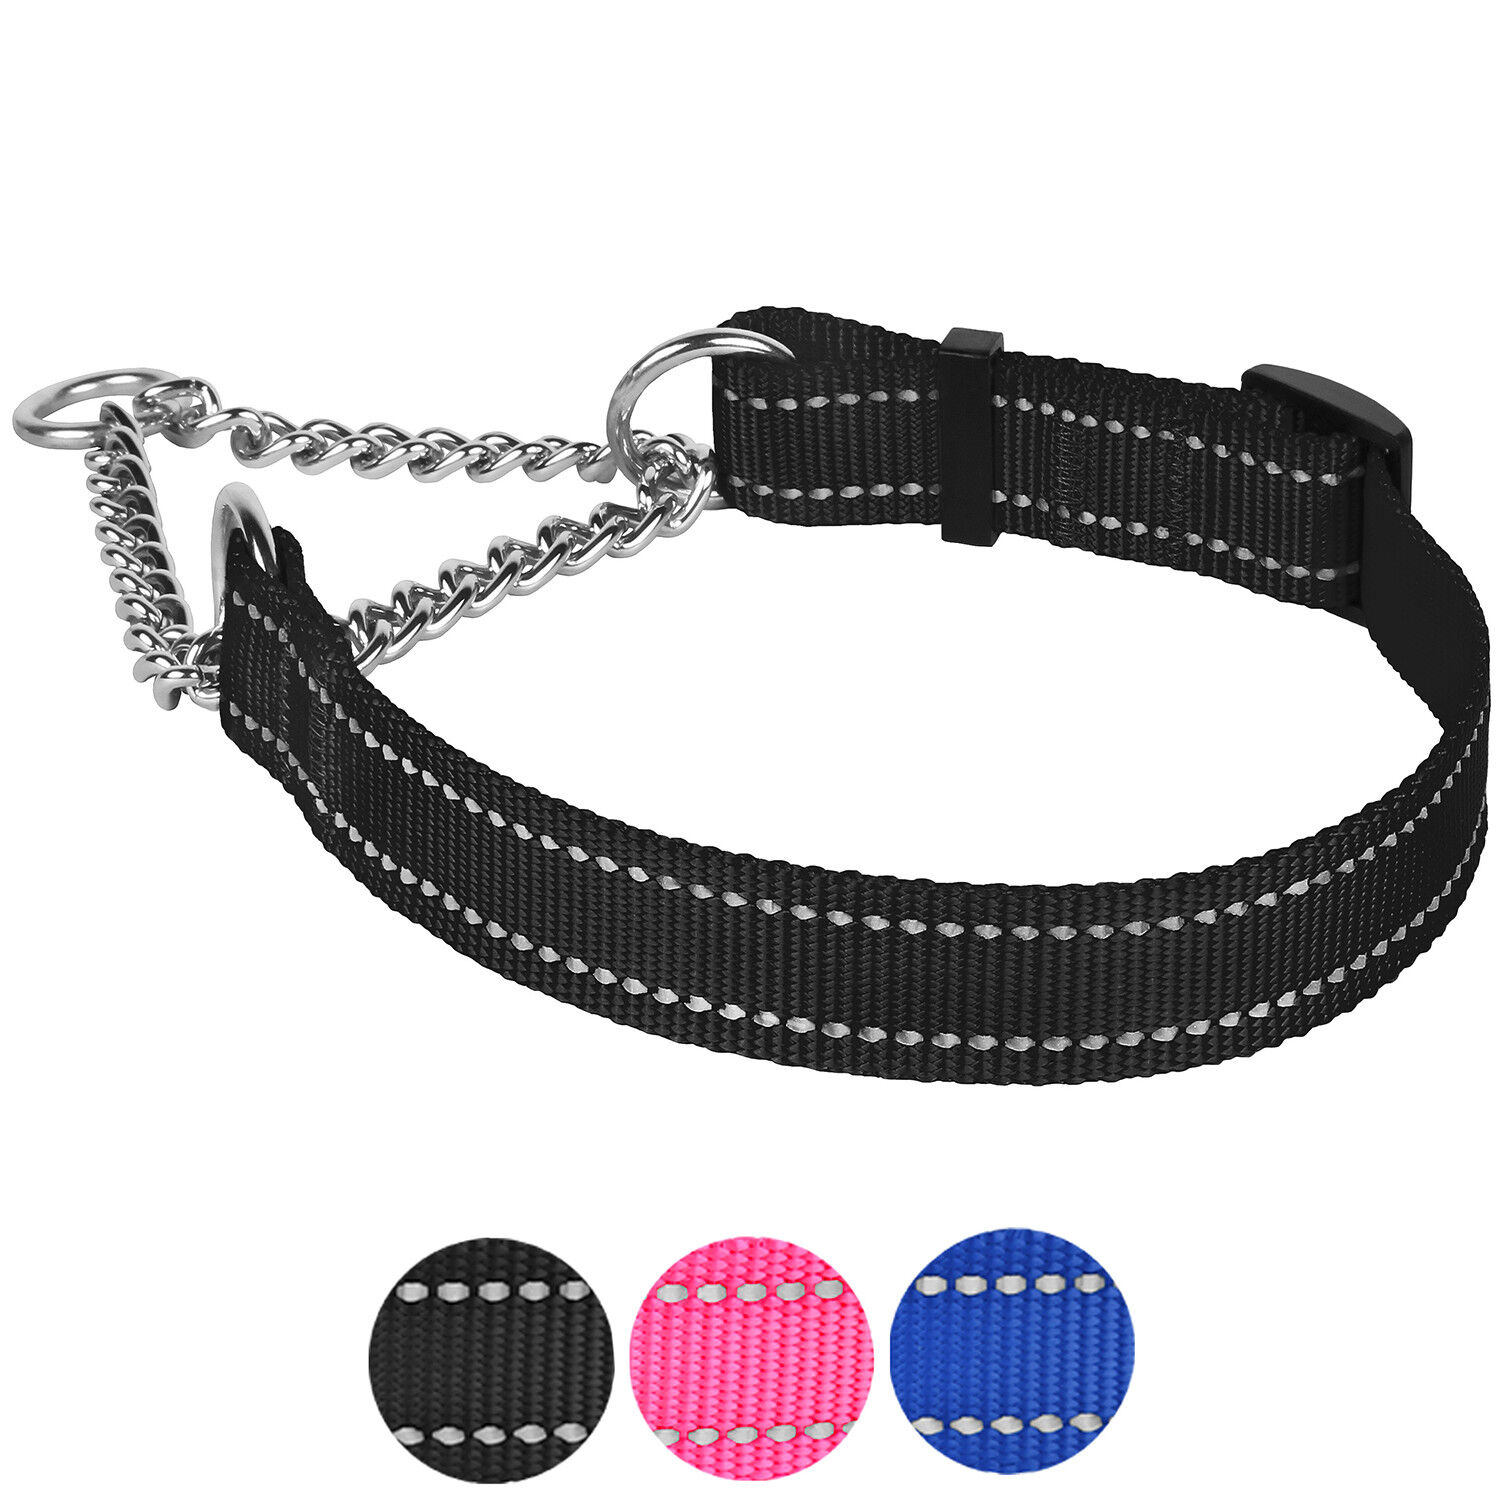 TSPRO Martingale Dog Collar Chain Collar Slip Training Choke Collar Adjustable Stainless Steel Chain Dog Collars for Large Dog